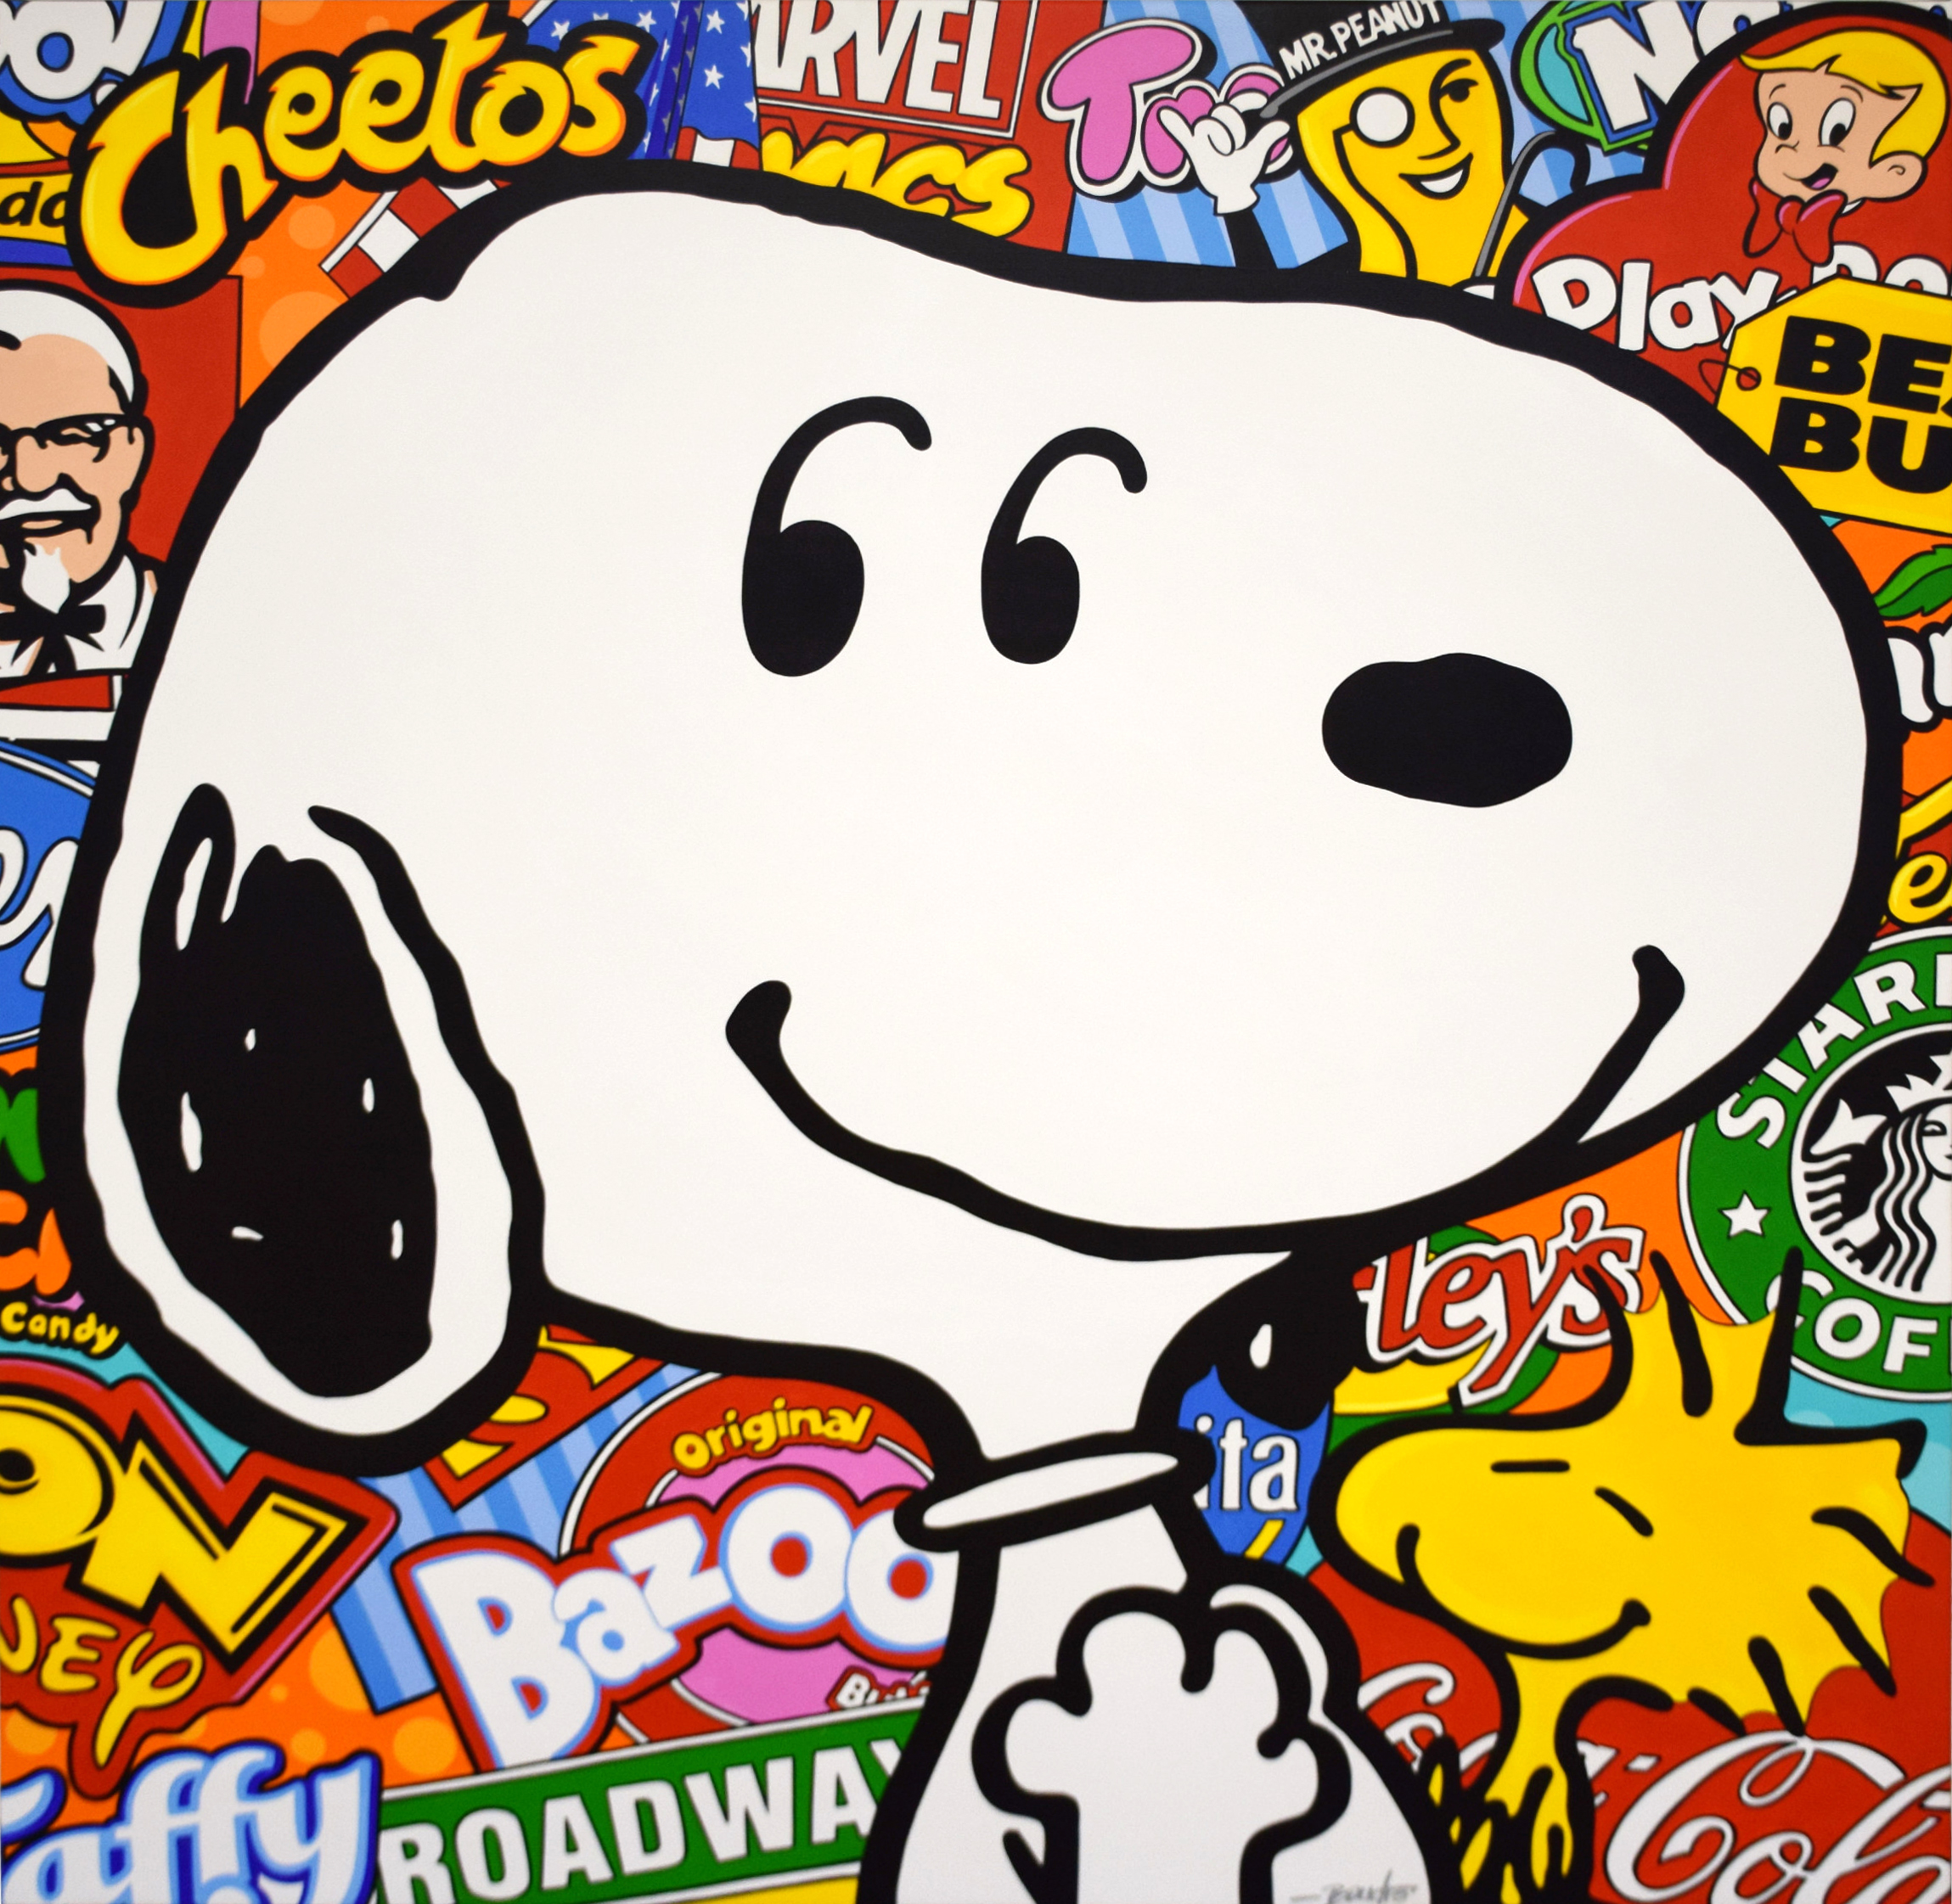 Guy Boudro - Snoopy , 9200-012-019